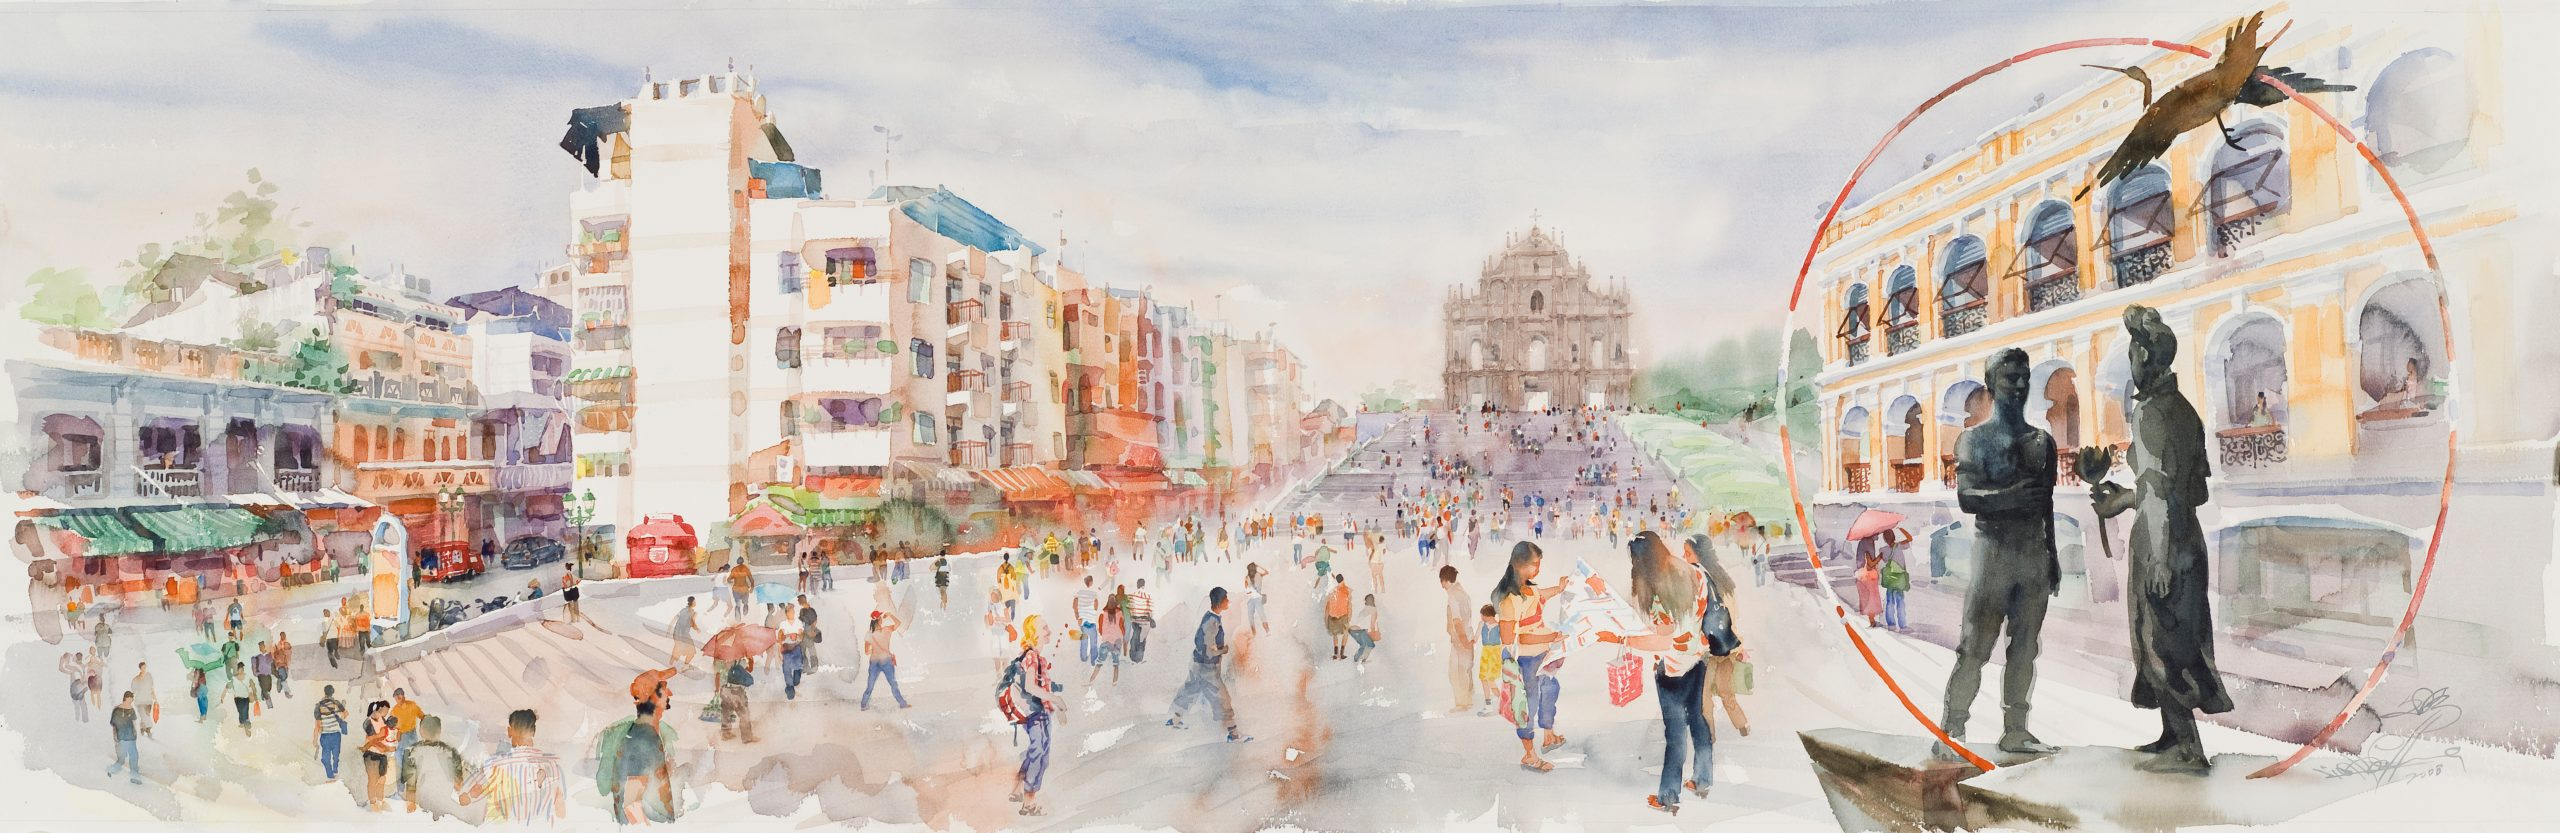 Painting of the Ruins of St. Paul's by Lio Man Cheong, 2008